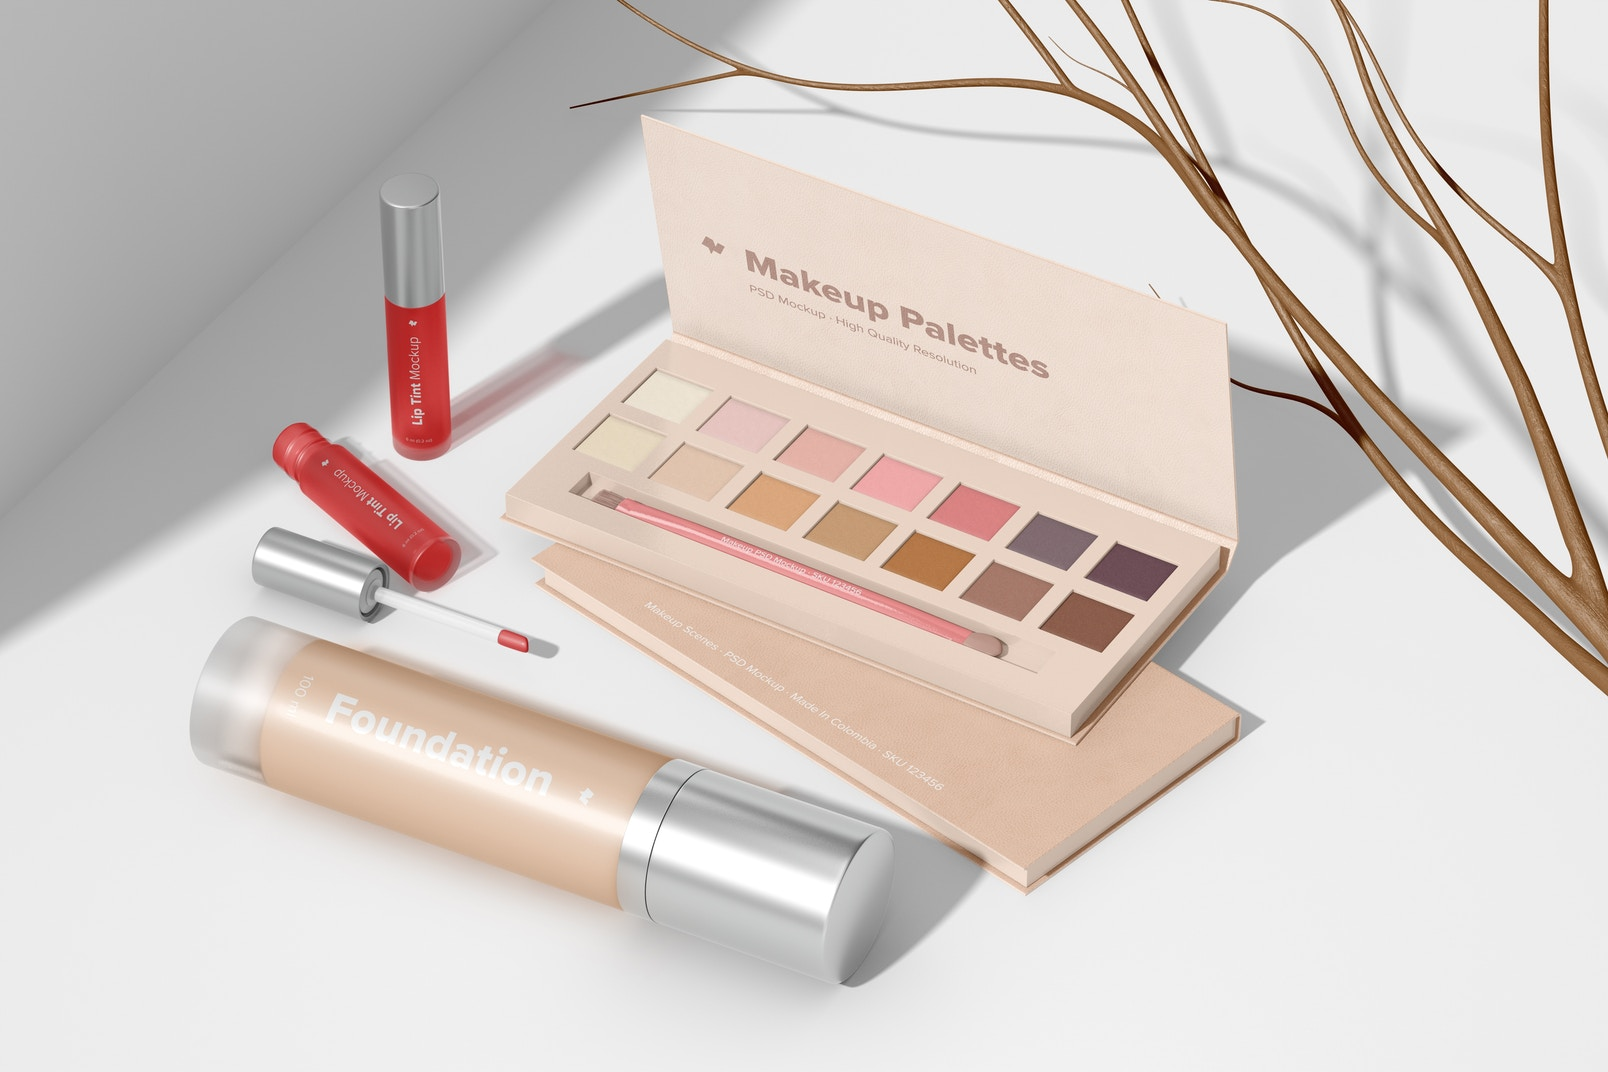 Makeup Palettes Mockup, Perspective View 02